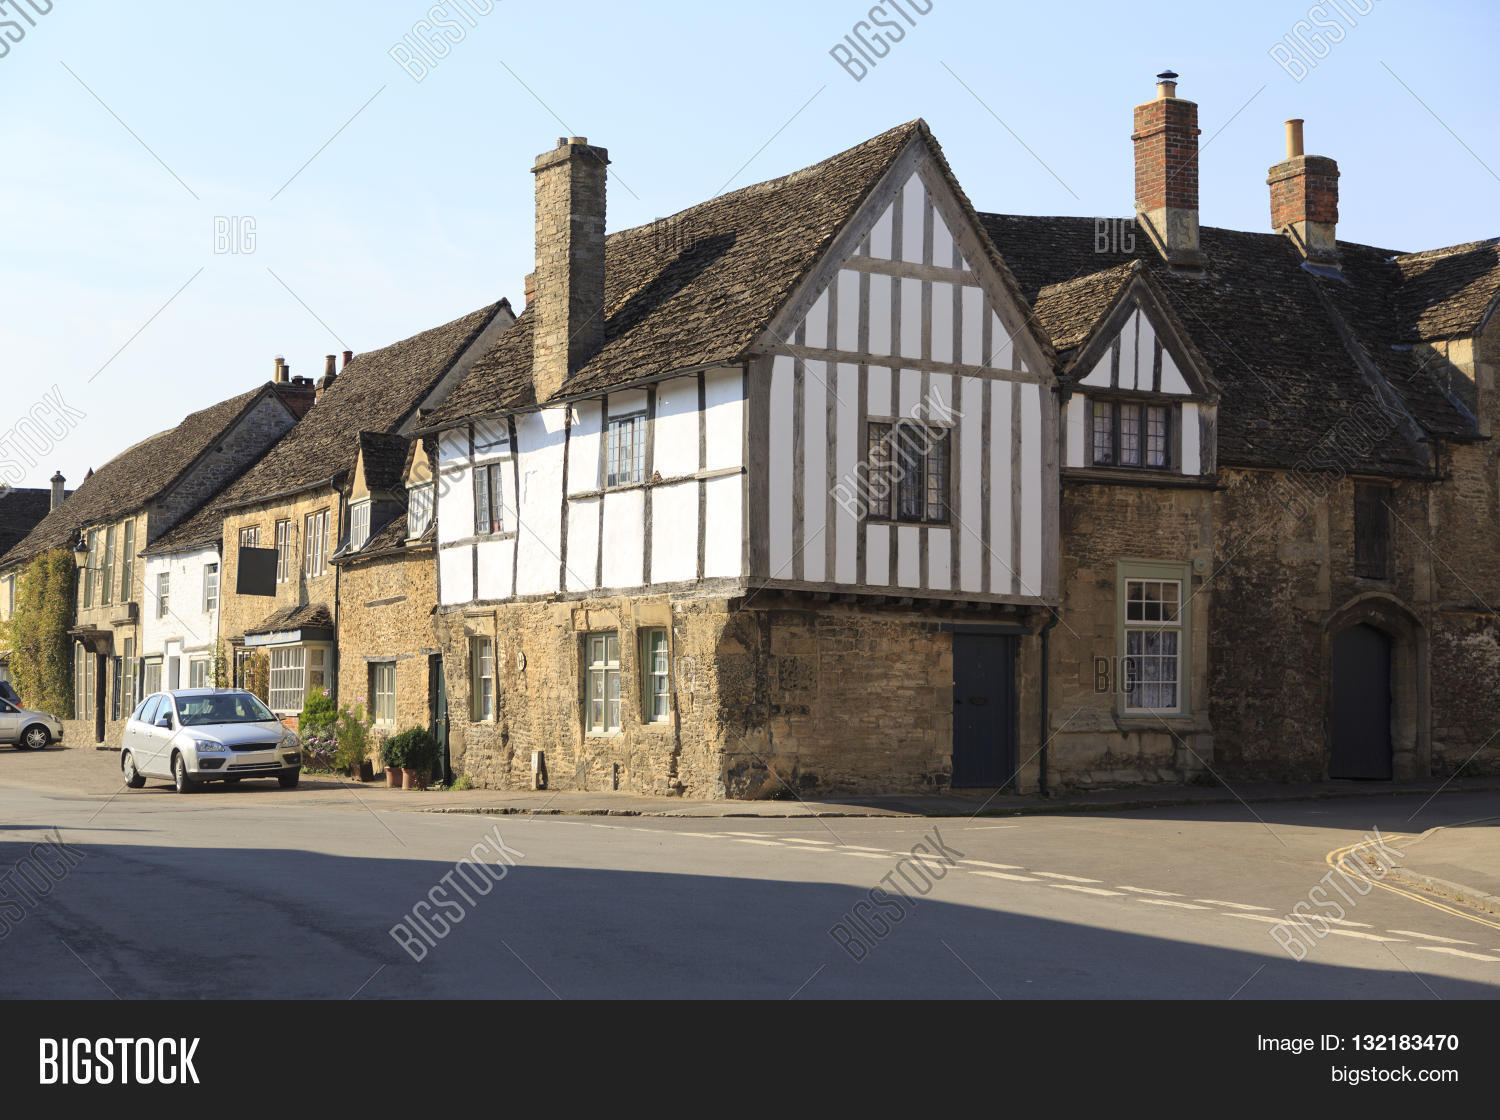 Old Houses Pretty Image & Photo (Free Trial) | Bigstock